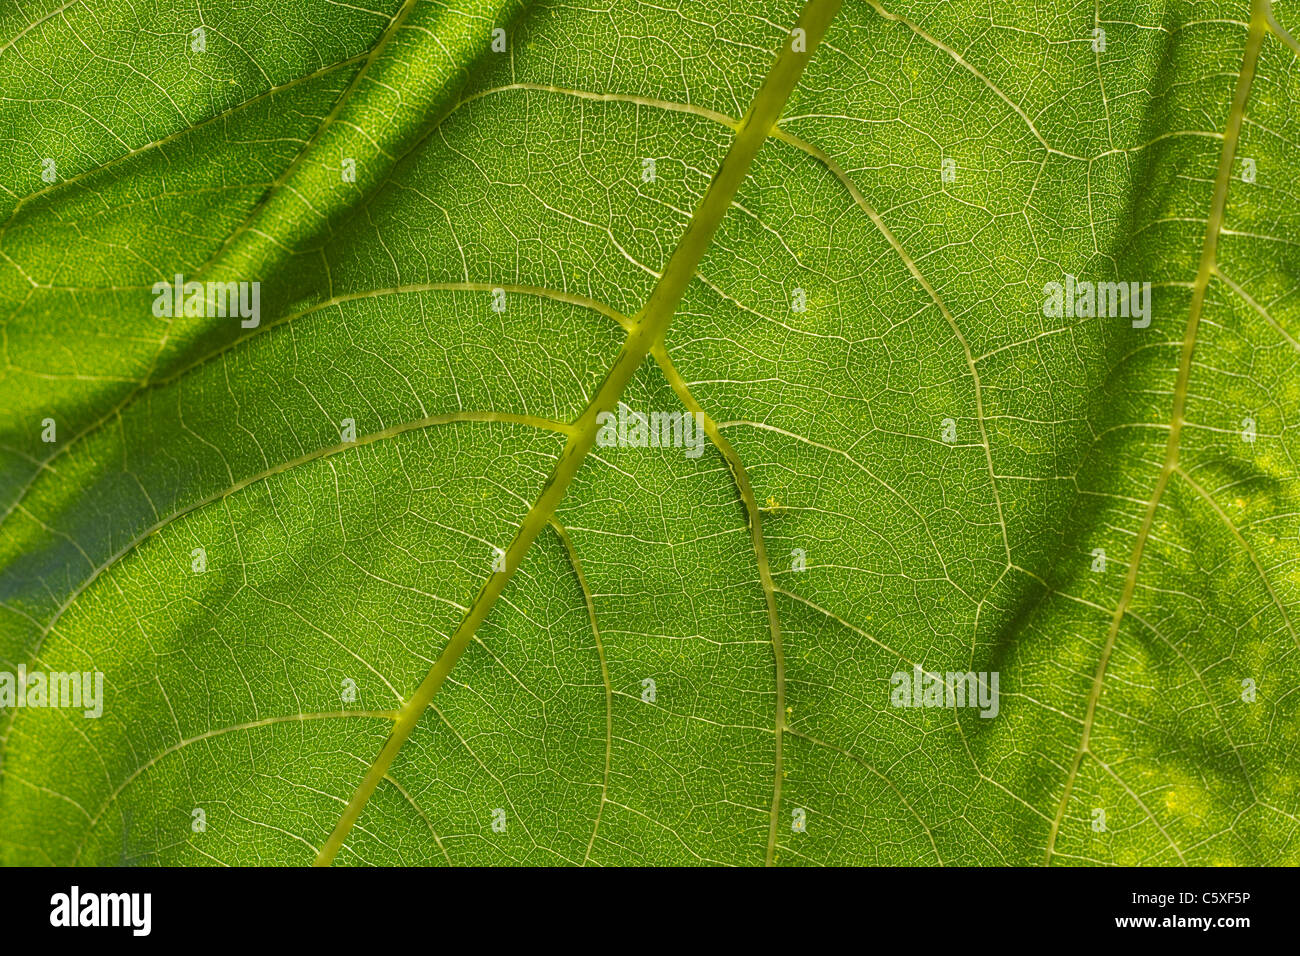 Light shines thorough a leaf of a sunflower plant - Stock Image